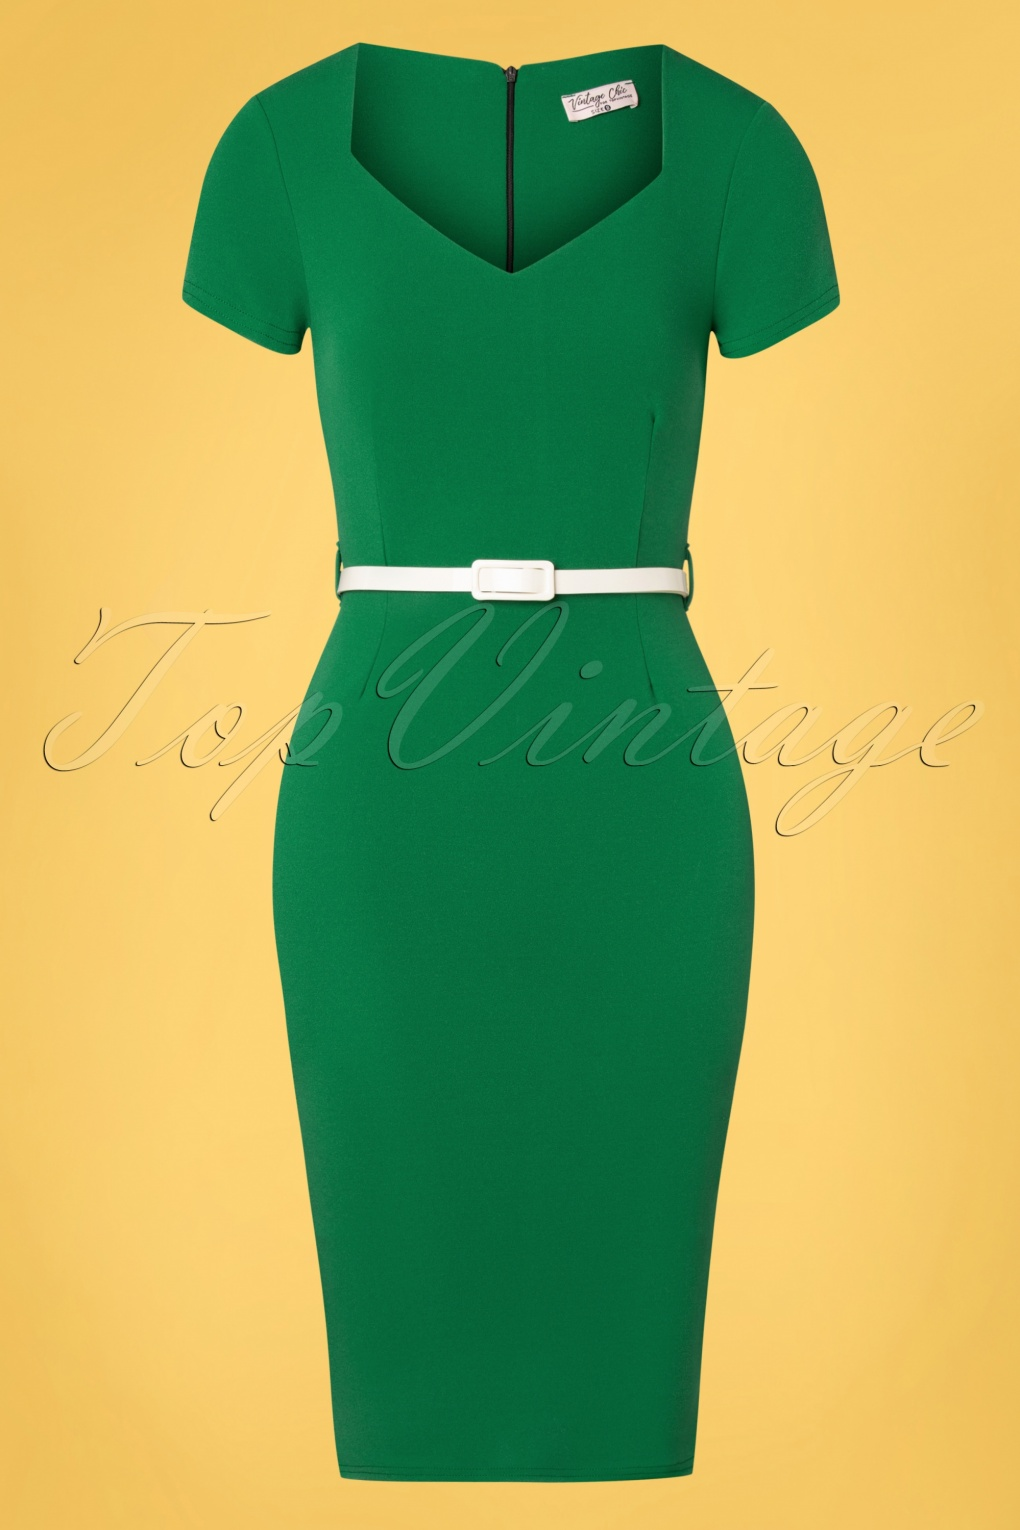 1950s Pencil Dresses & Wiggle Dress Styles 50s Melany Pencil Dress in Emerald Green £54.18 AT vintagedancer.com